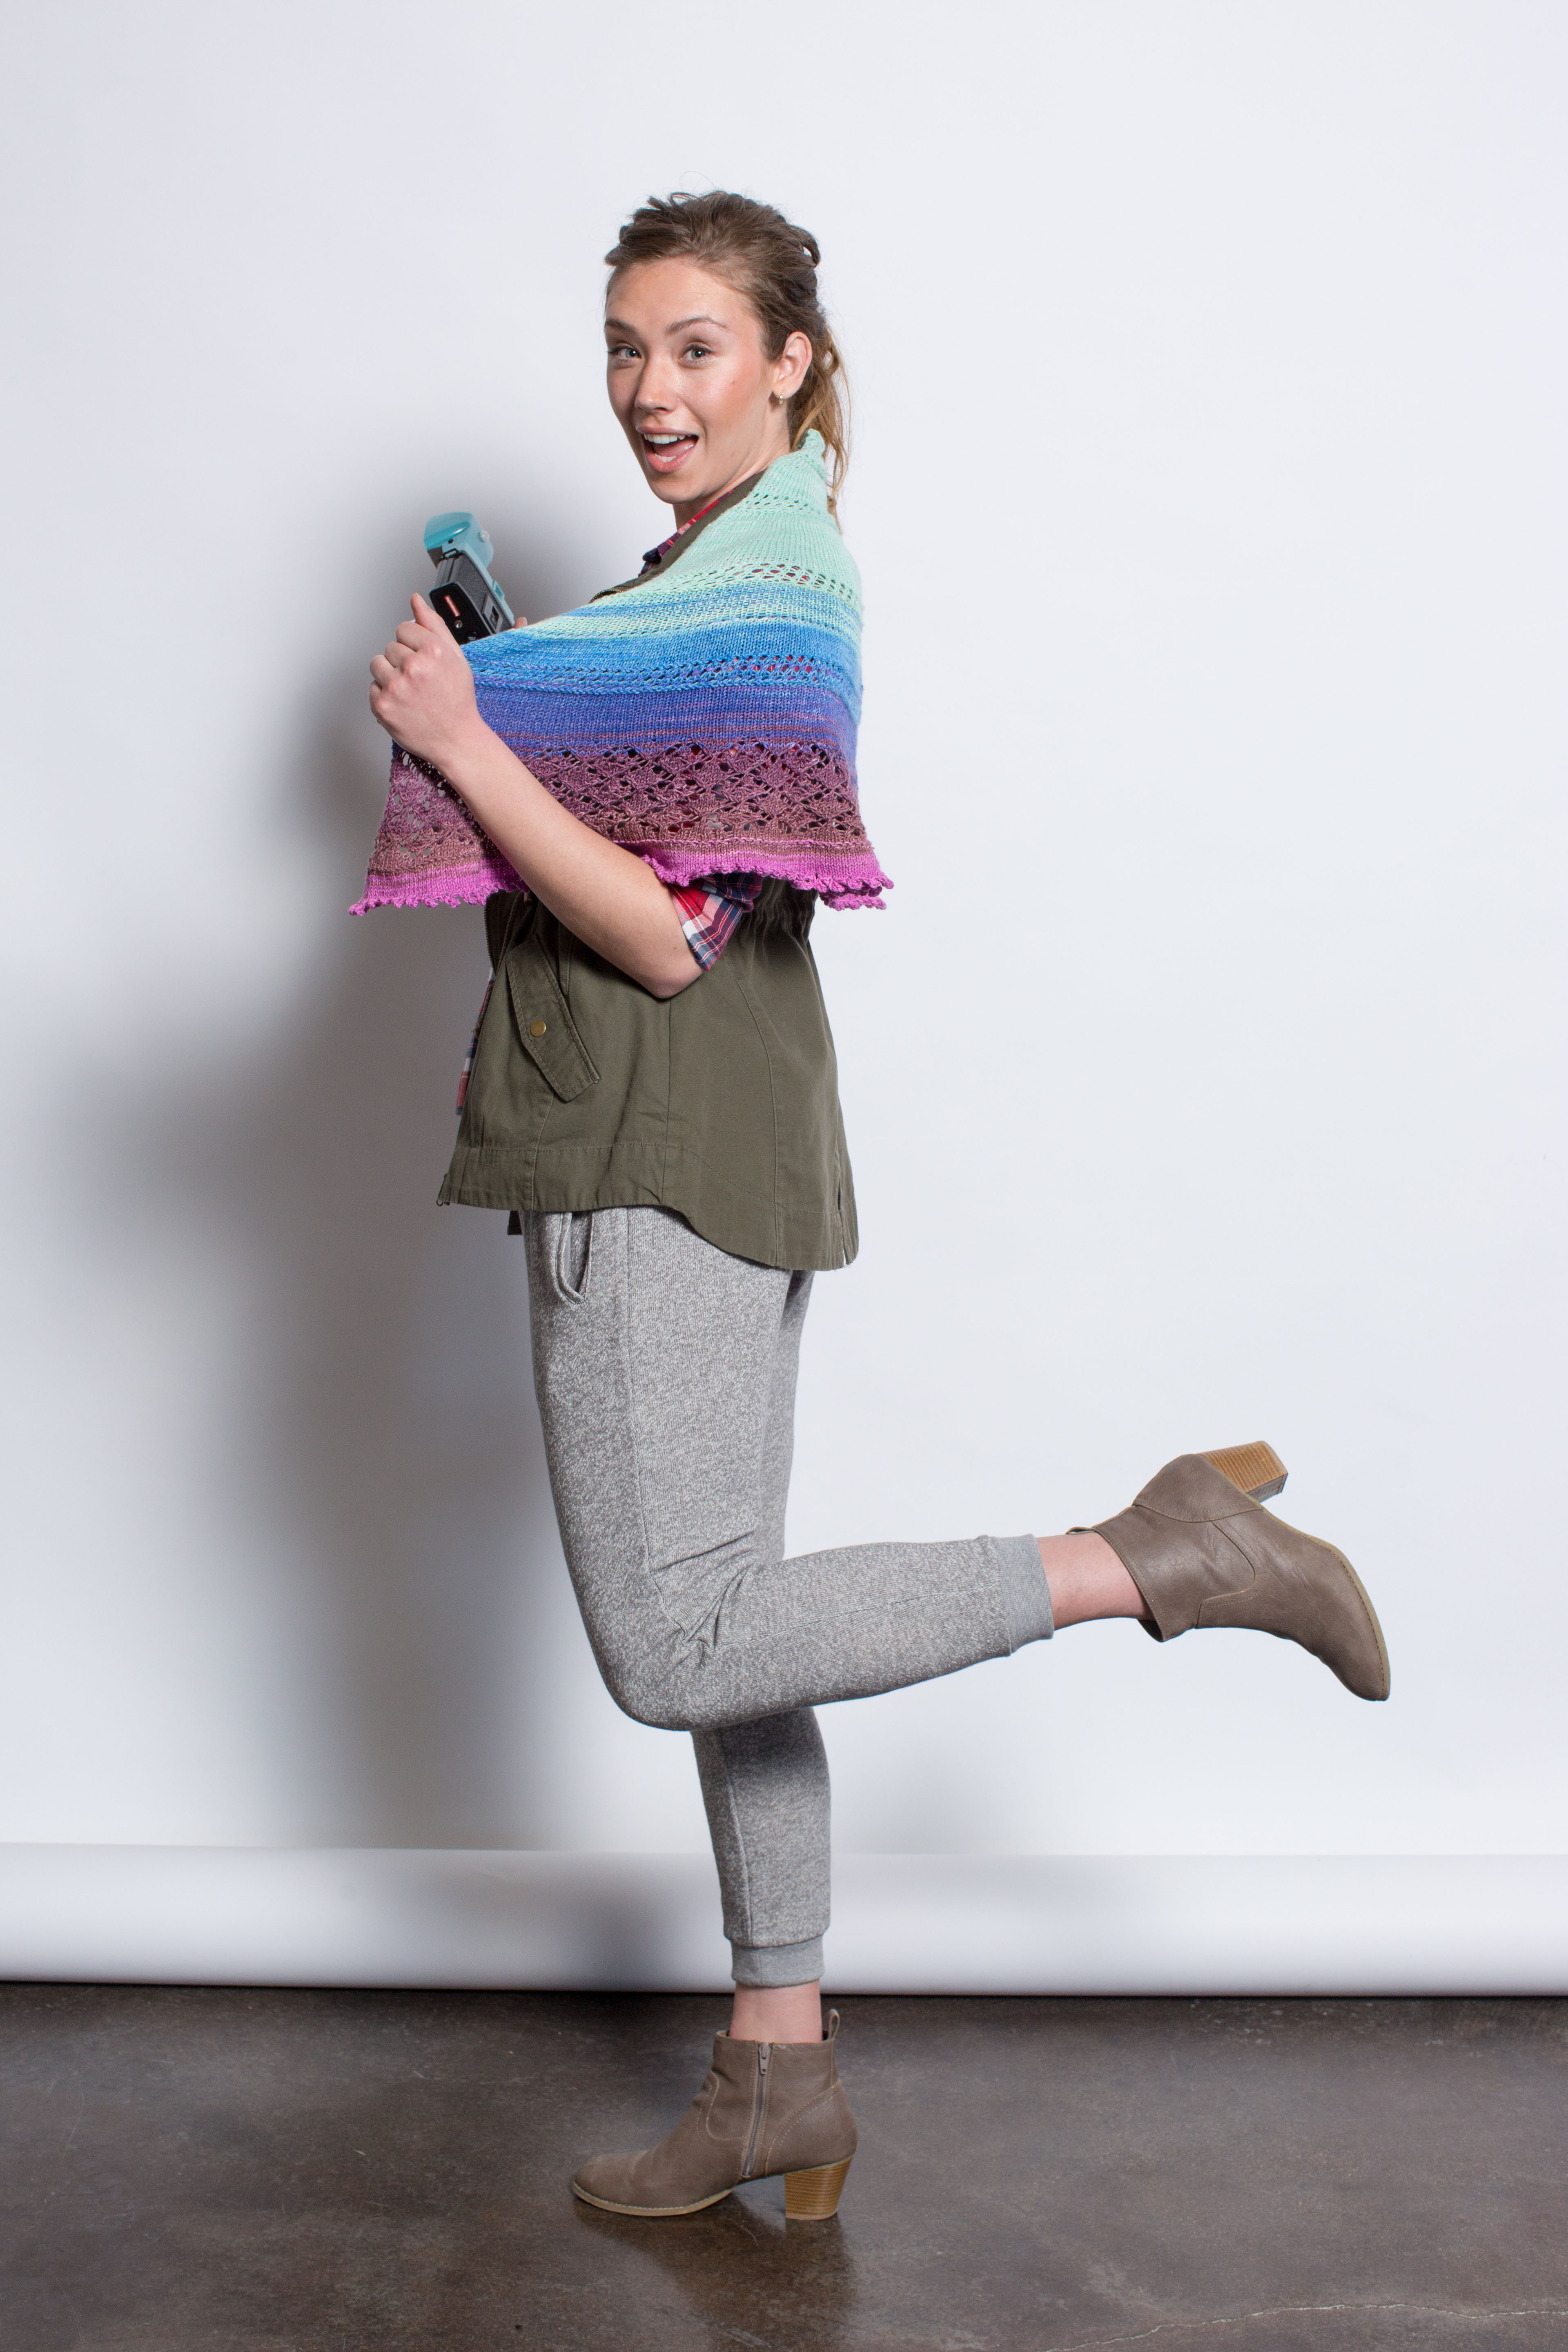 If you like knitted shawls, then you'll LOVE this amazing shawl knitting pattern titled Spirit Lake Shawl that involves long-striping yarn and more!